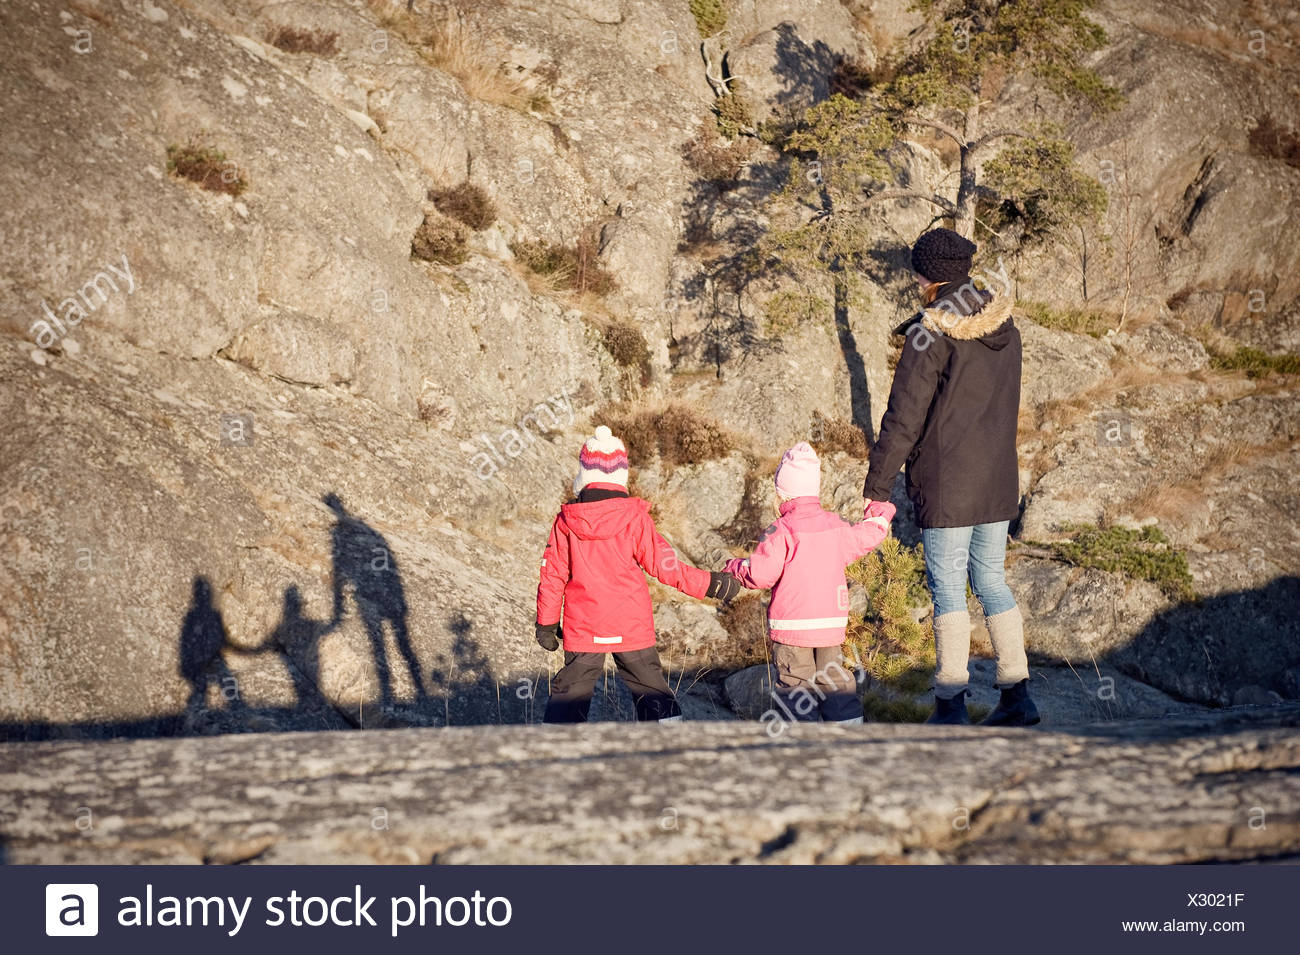 Sweden, Trosa, Mother with children looking at their shadows - Stock Image